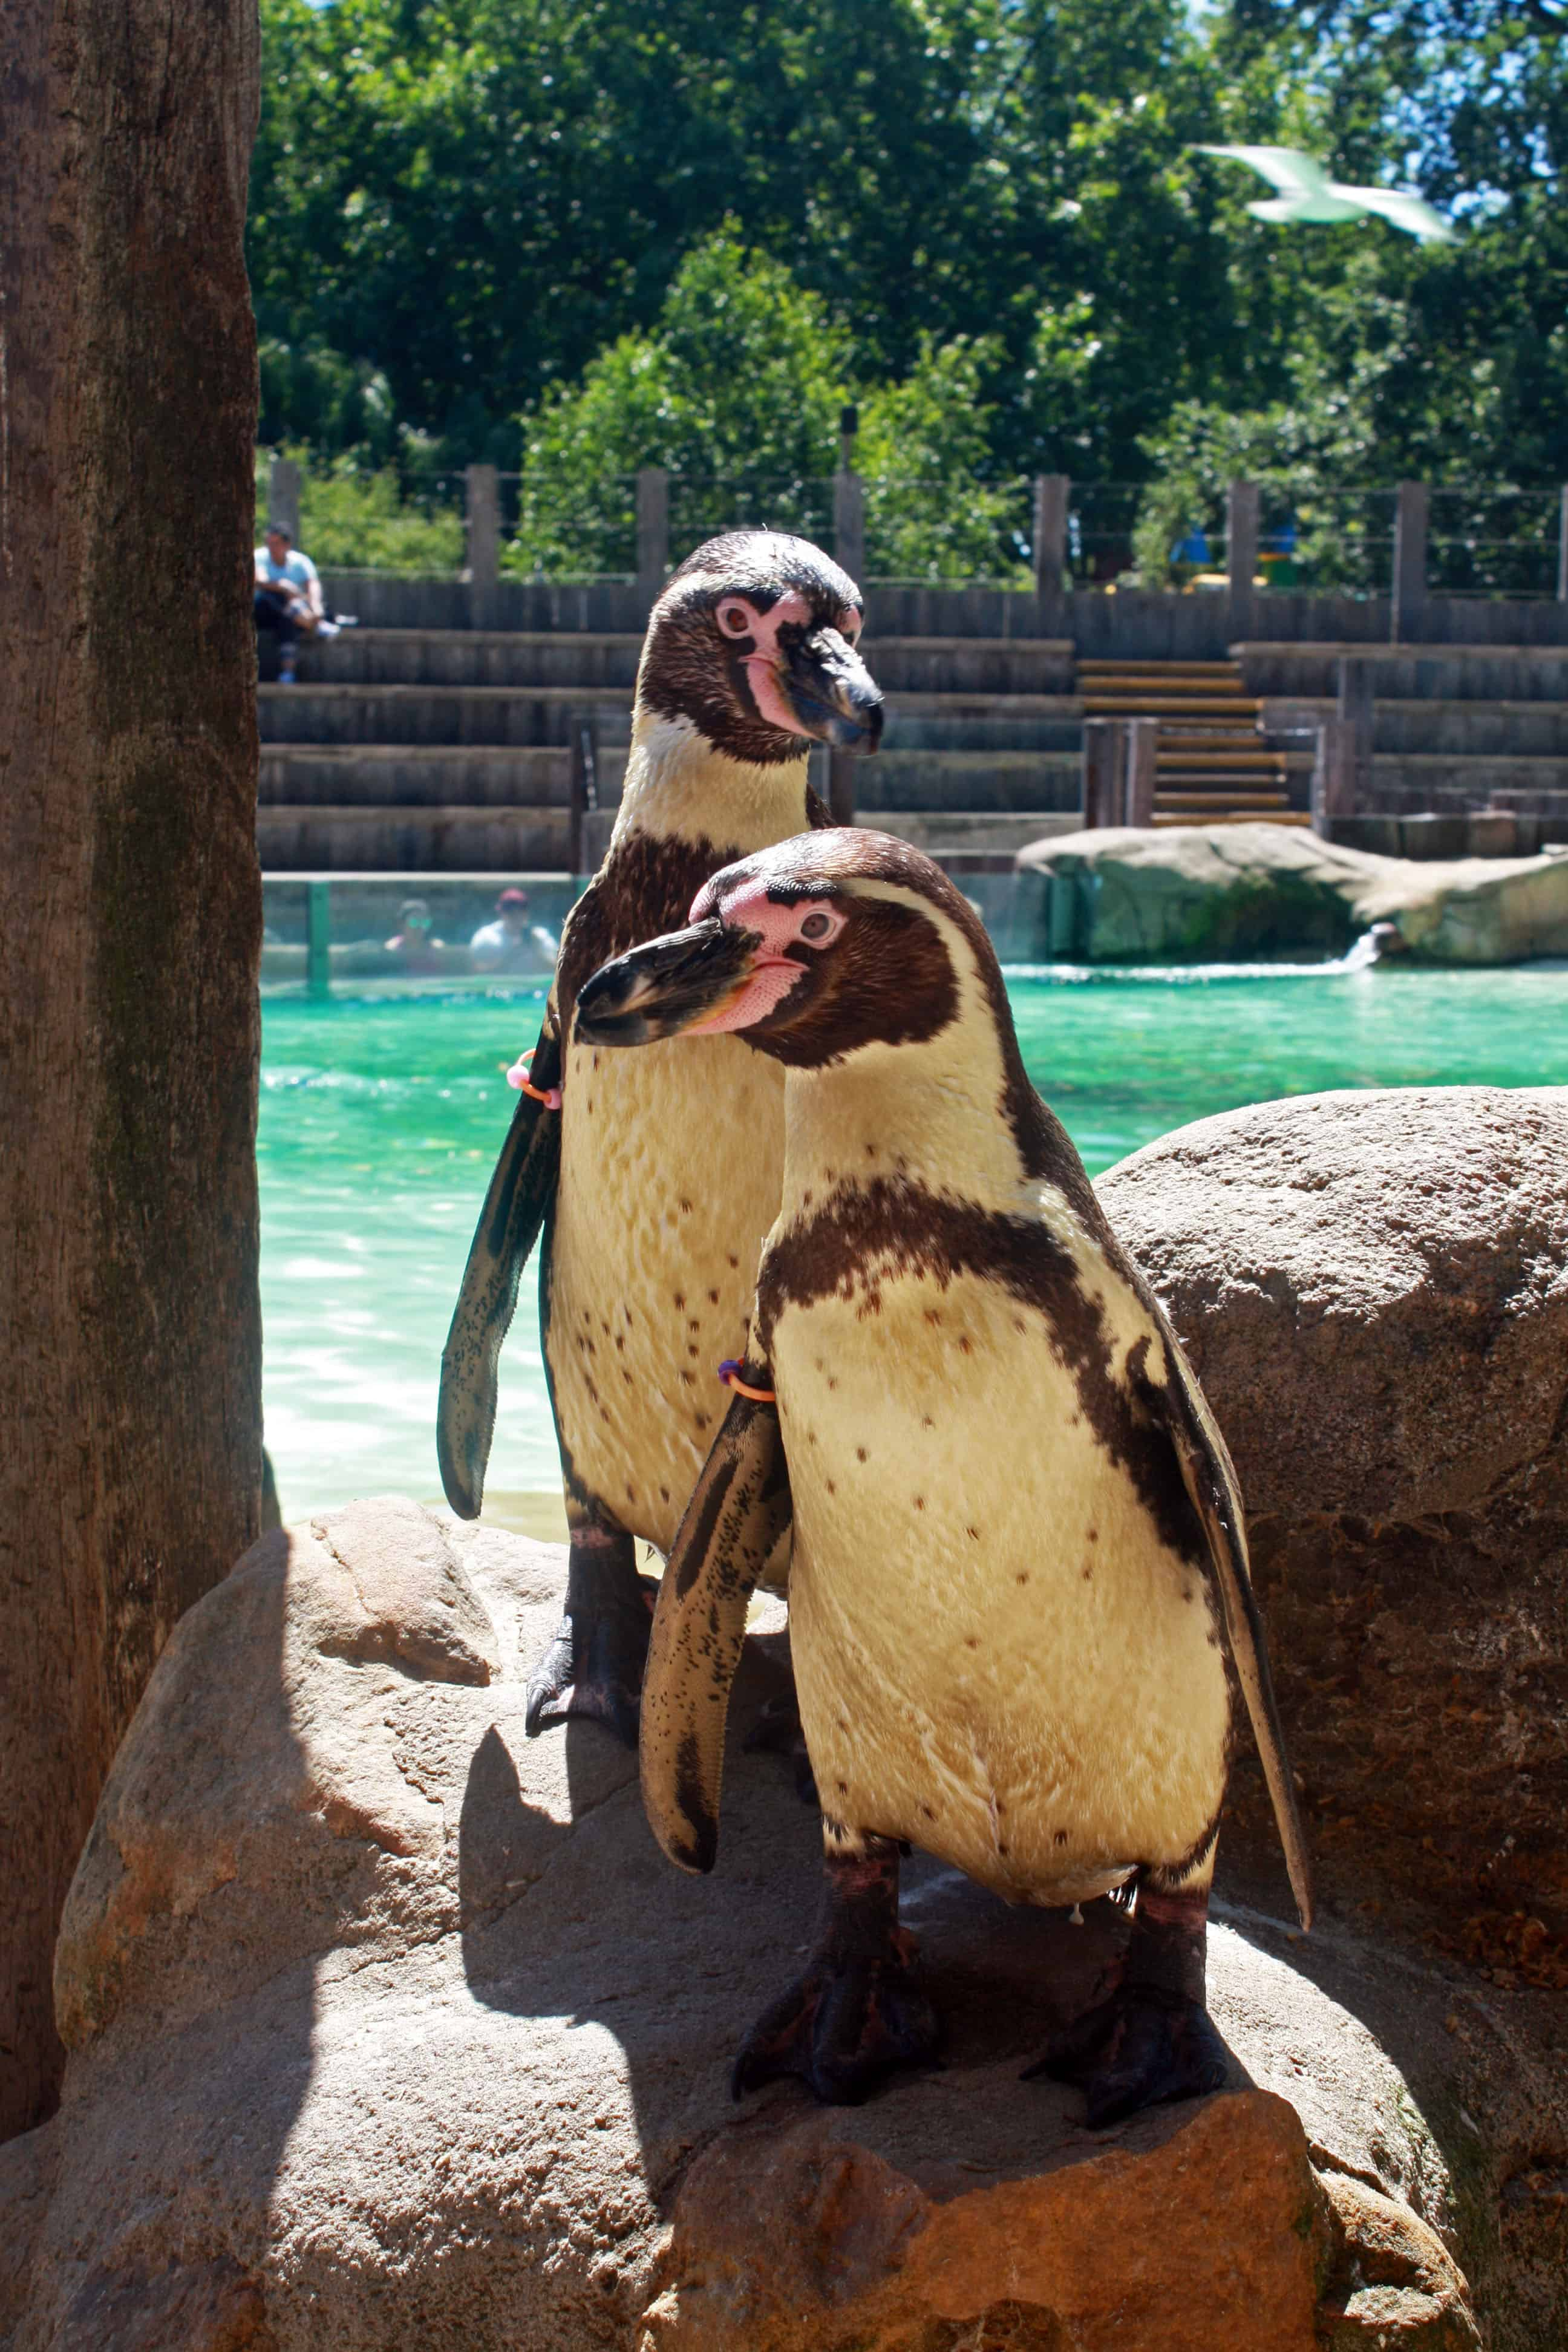 Meet the penguins at ZSL London Zoo